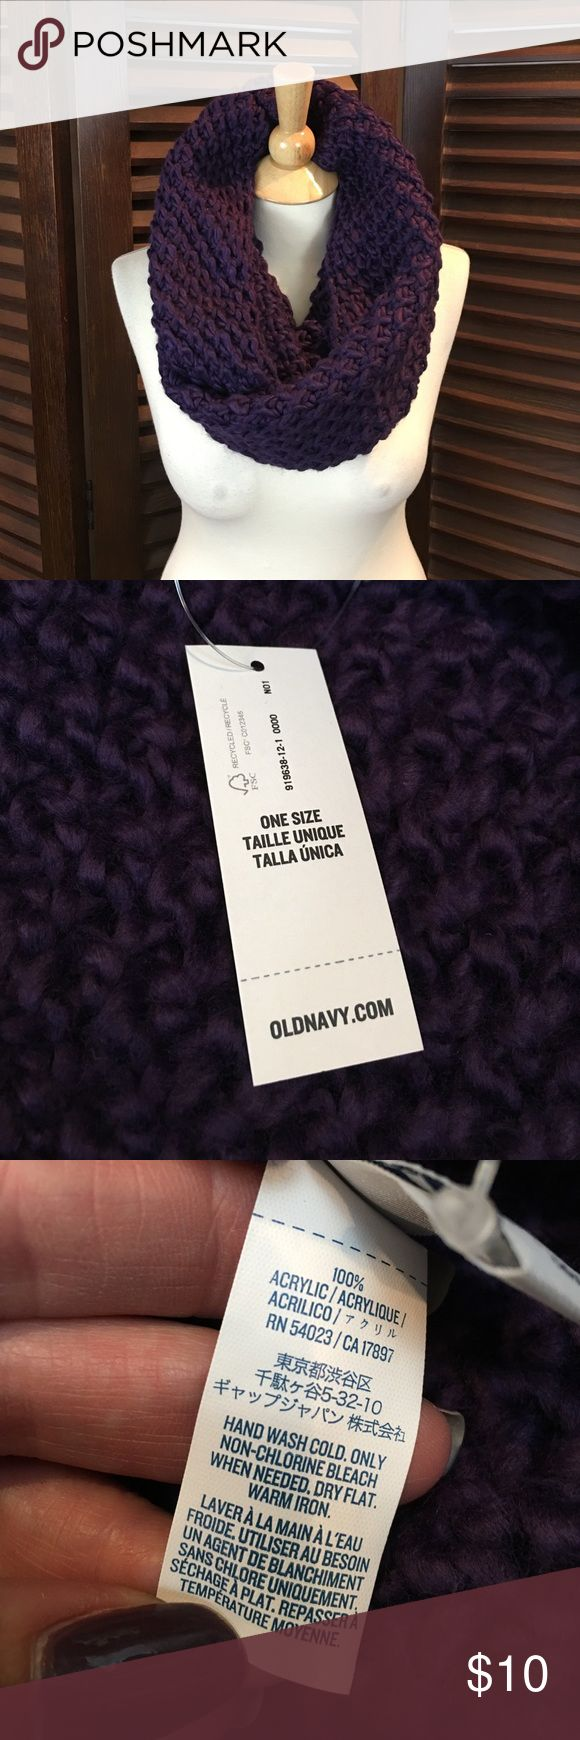 Gorgeous purple knit chunky infinity scarf Super warm and cozy purple knit infinity scarf from Old Navy.  Brand new with tags! Old Navy Accessories Scarves & Wraps